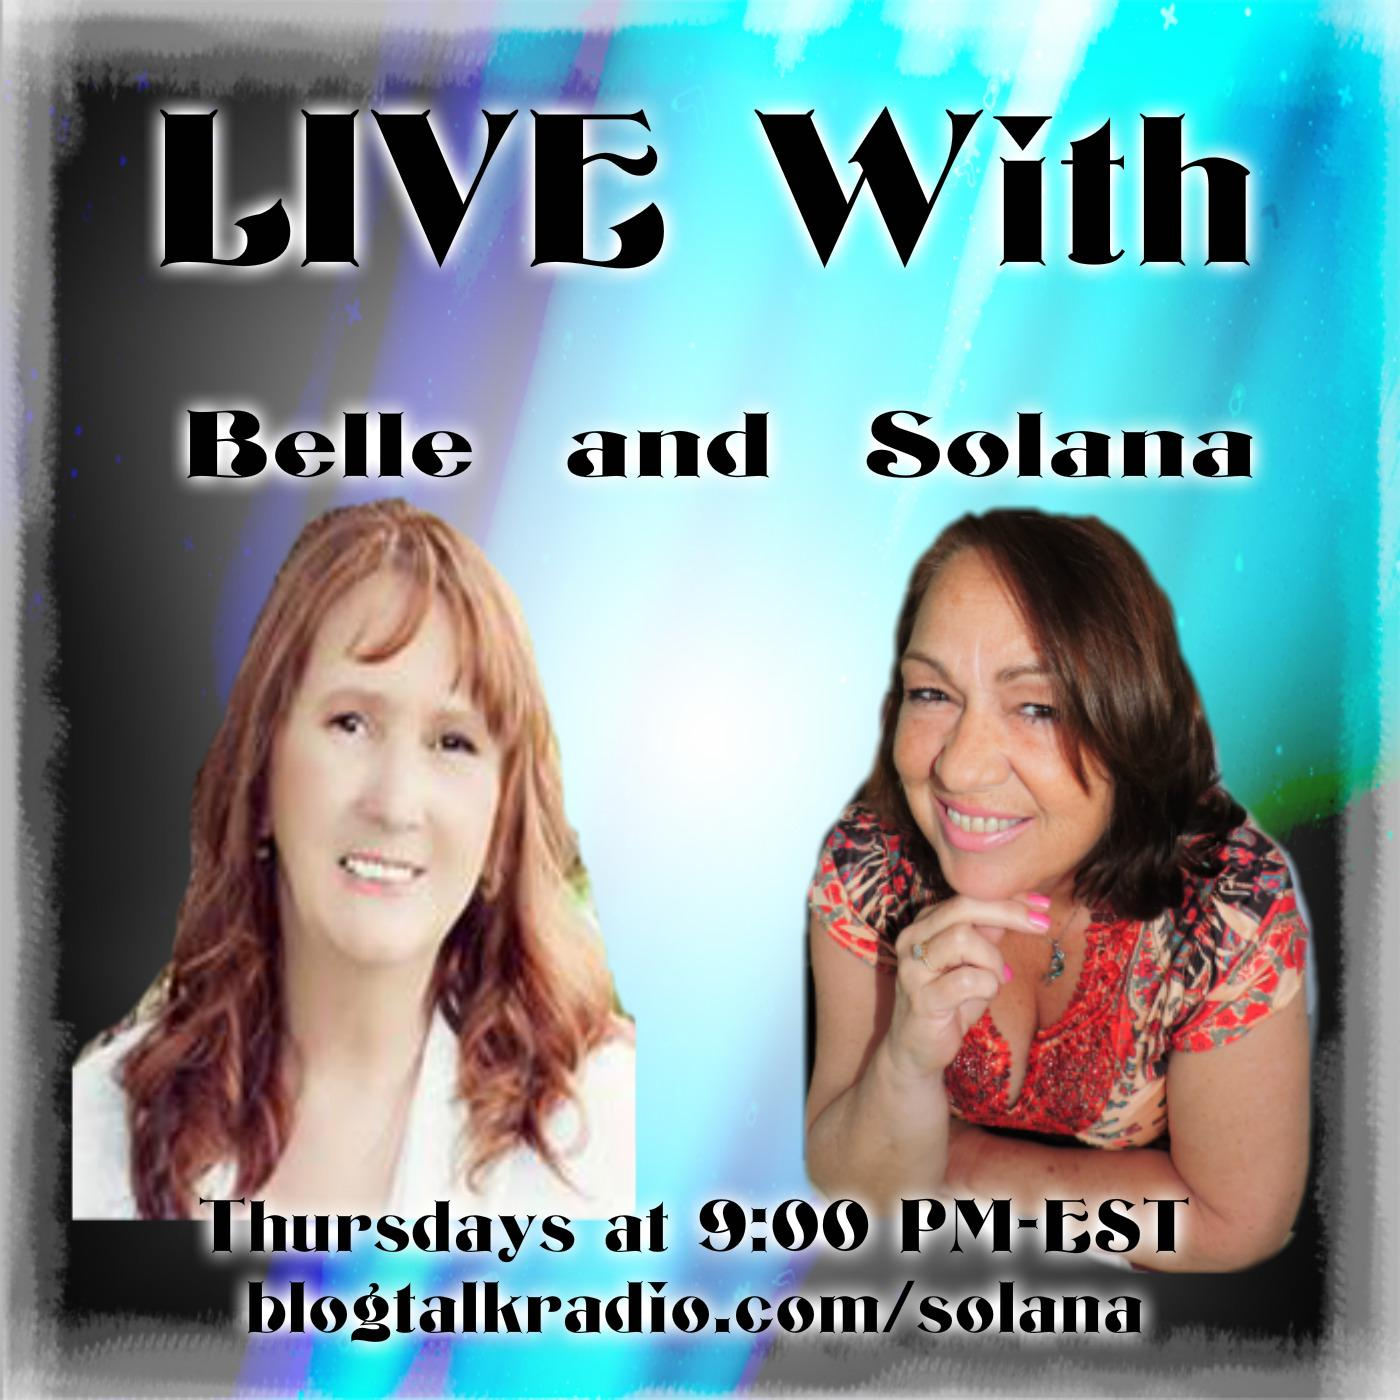 Live with Belle and Solana